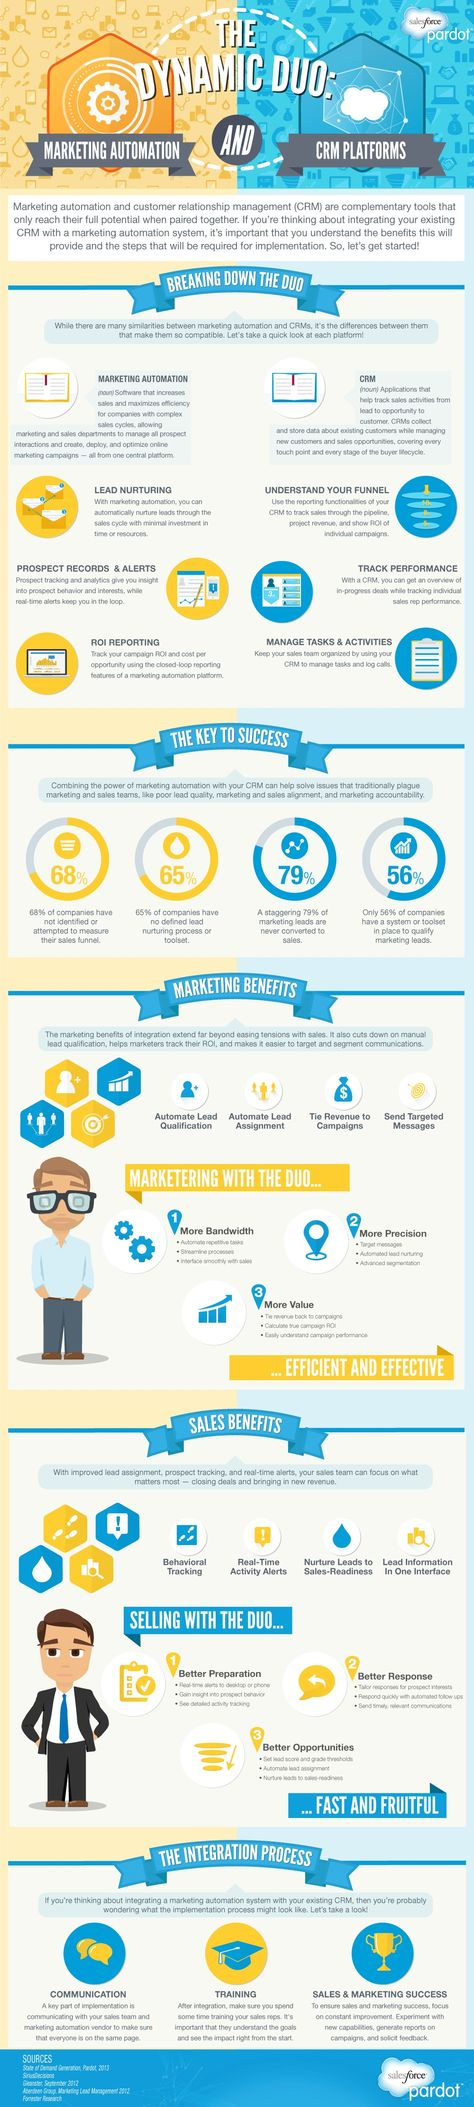 Marketing Automation & Your CRM #infographic - Pardot | #TheMarketingAutomationAlert | The MarTech Digest